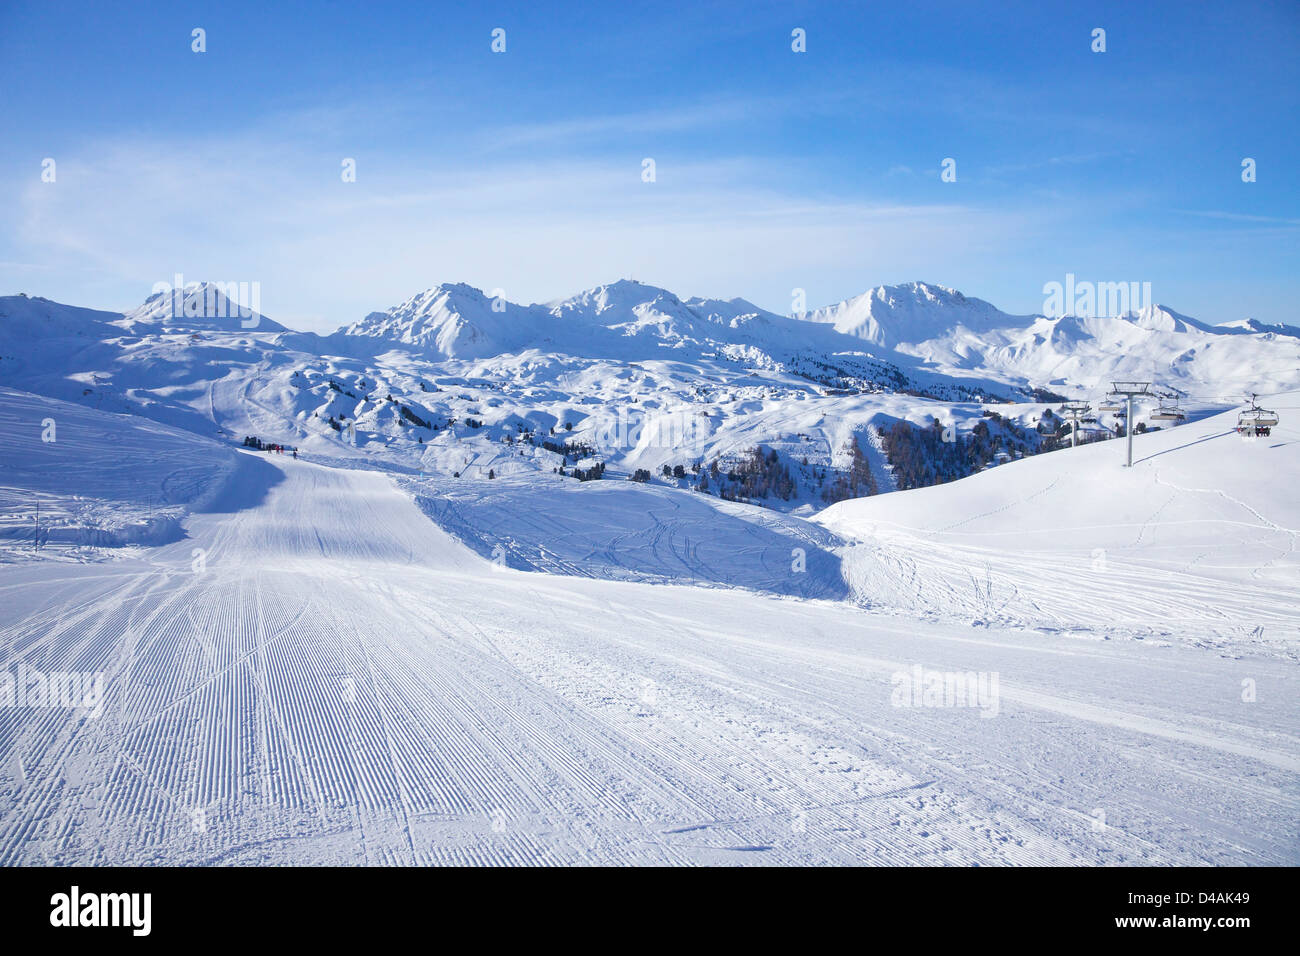 View from St Jacques blue piste towards Belle Plagne, La Plagne, France, Europe - Stock Image